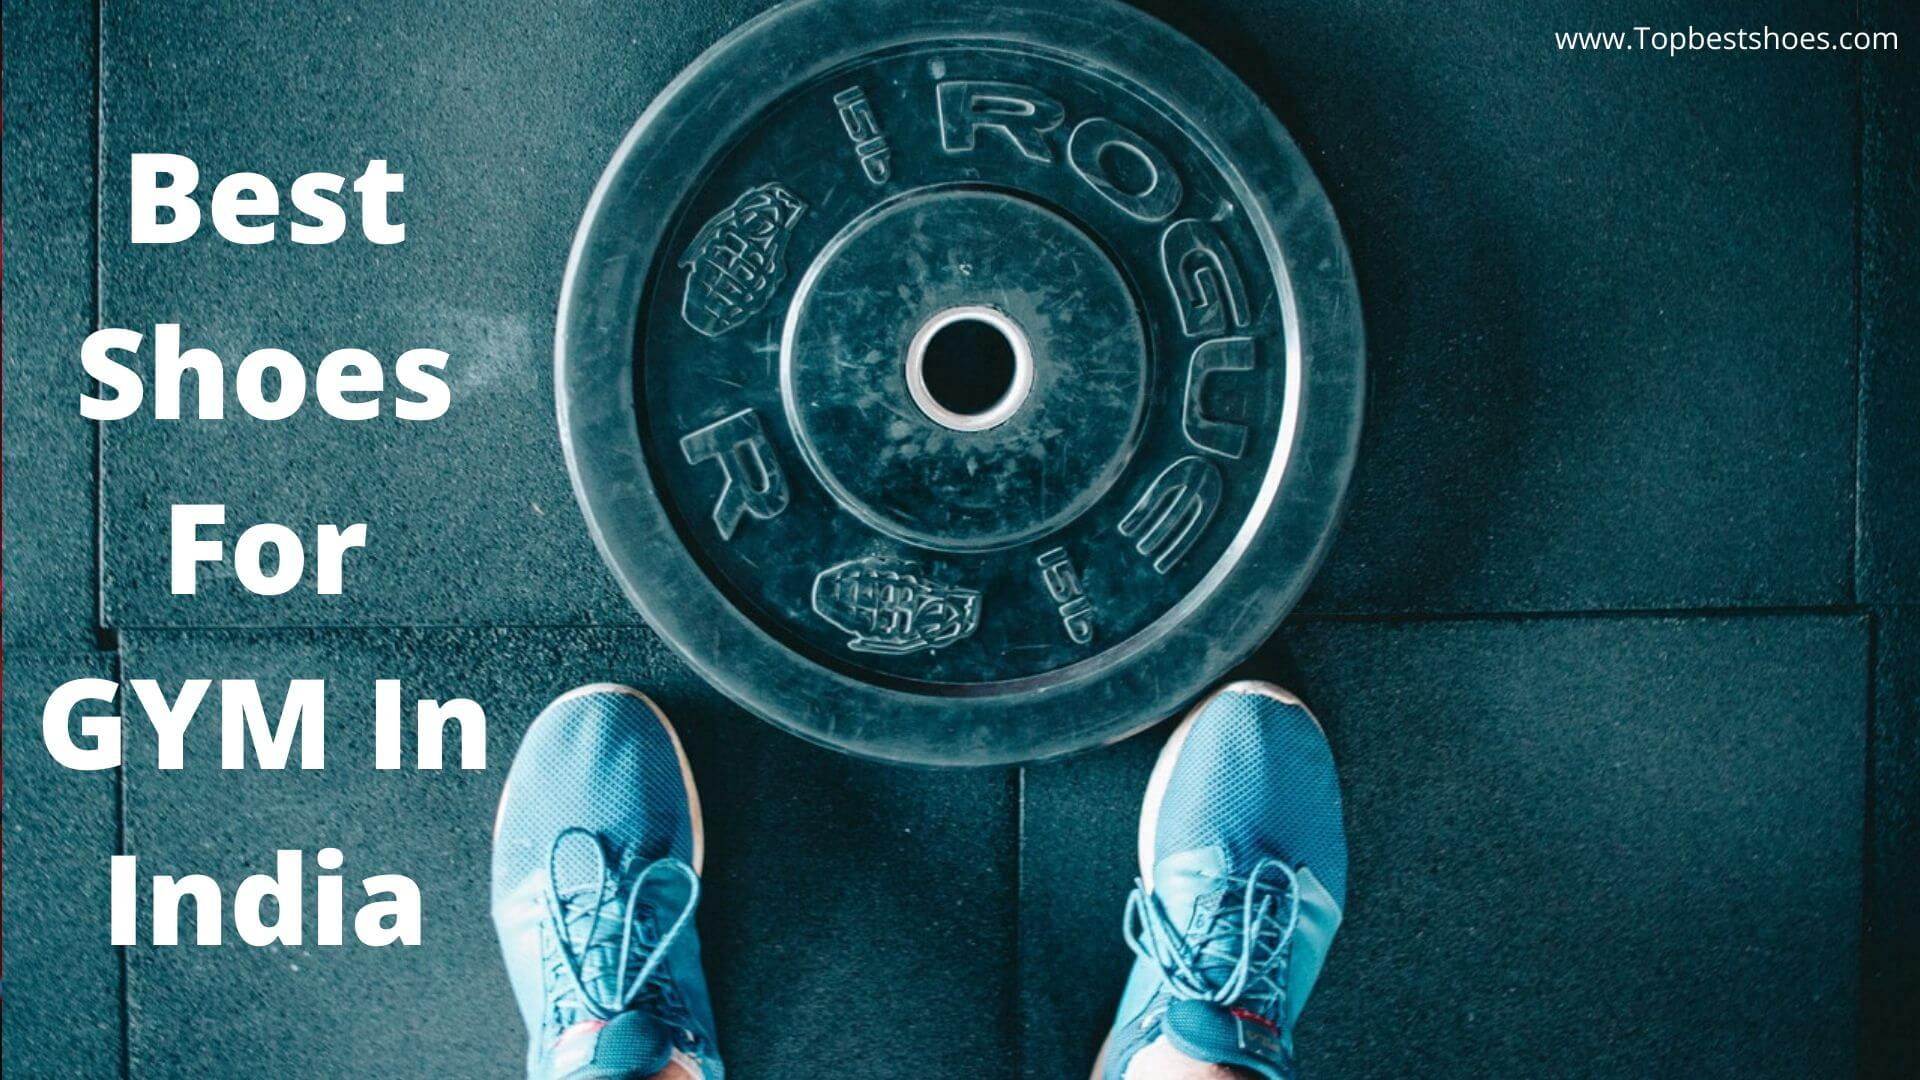 Top 10 Best Shoes For GYM In India | 2020 (Updated)